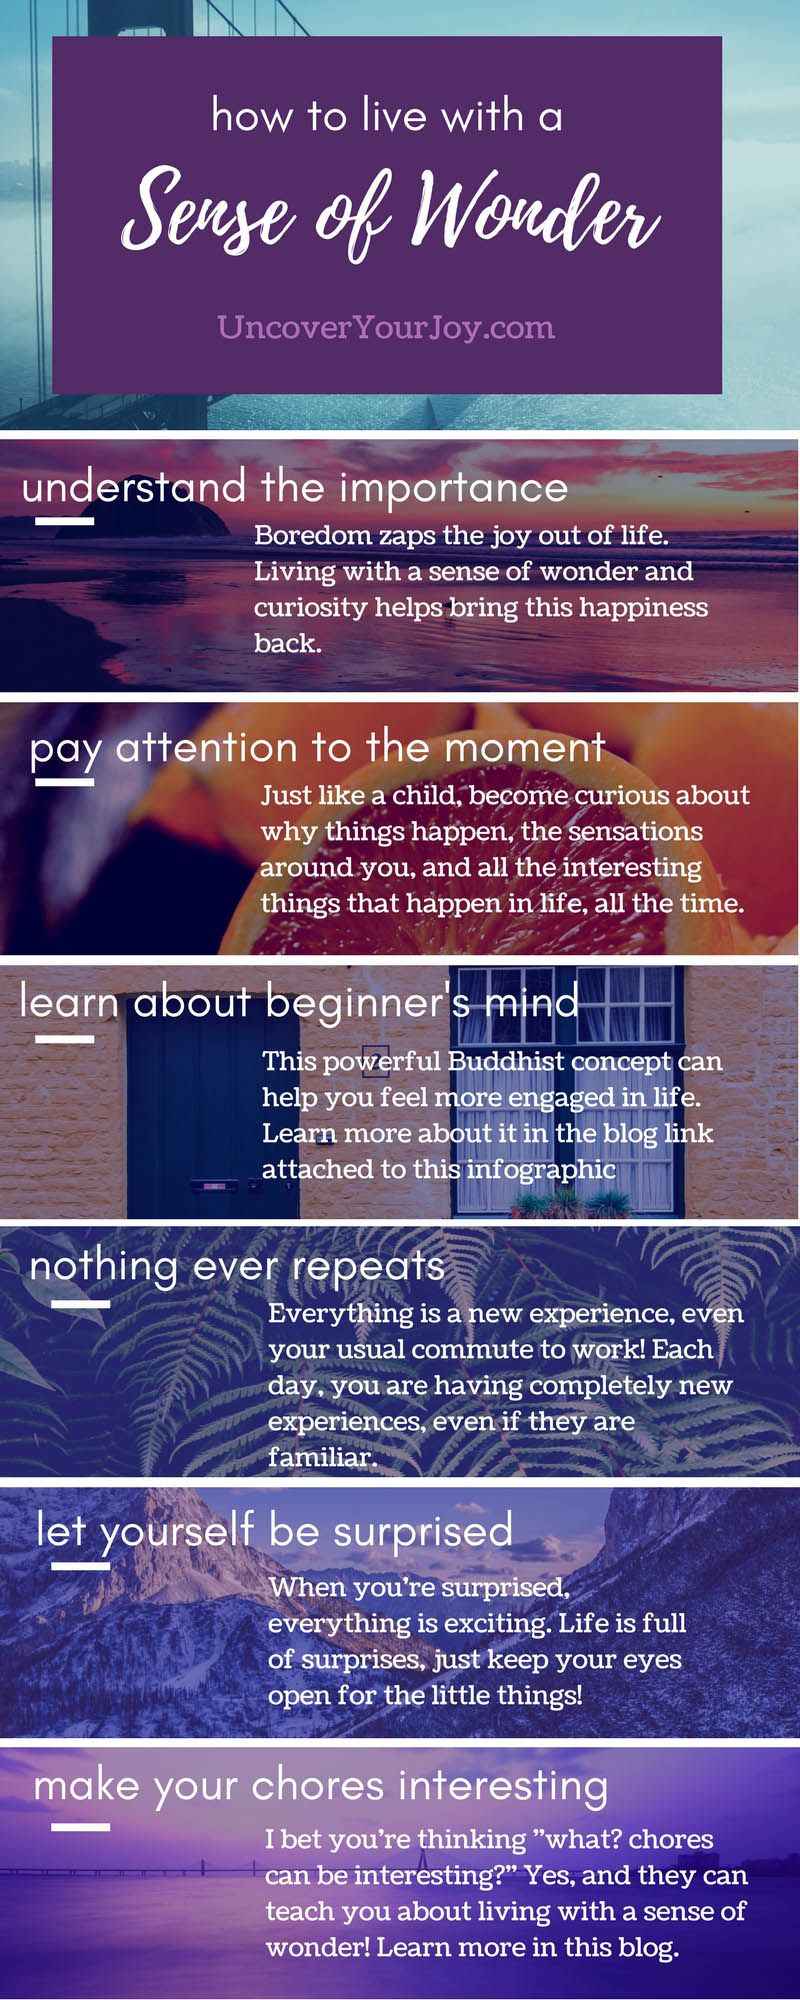 10Ways toGet Away from ItAll and Feel the Wonder ofLife